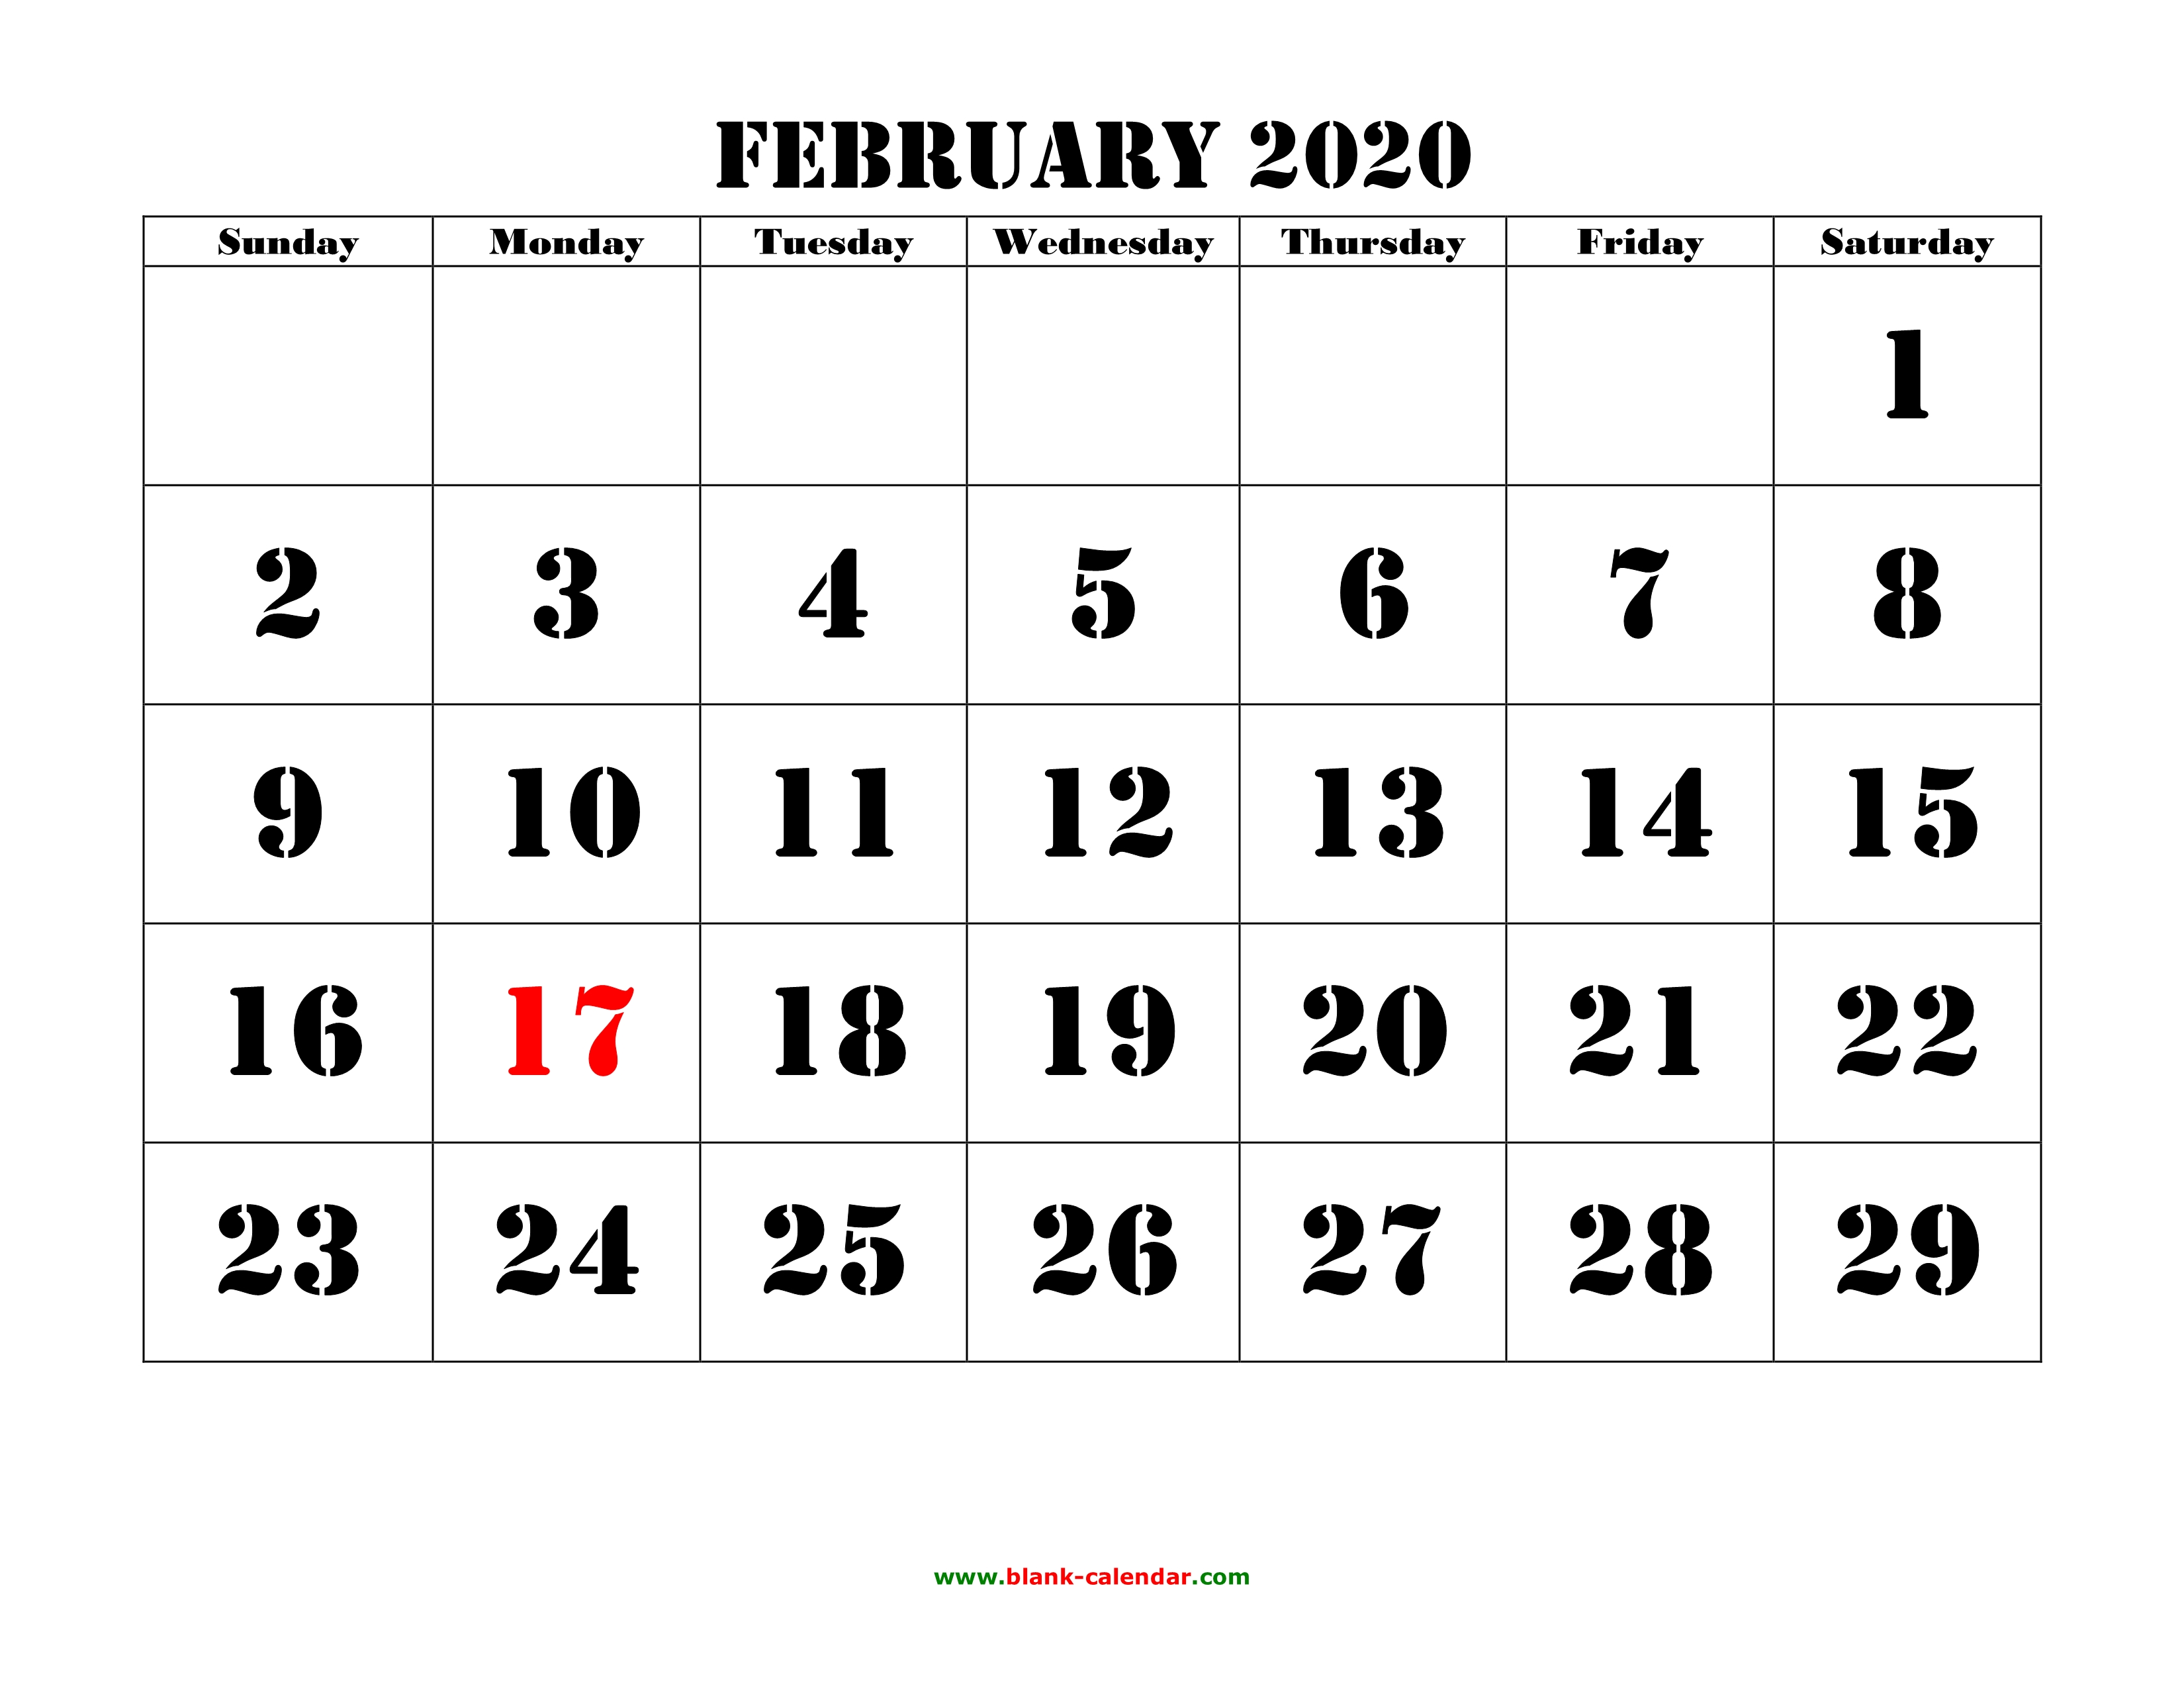 2020 Free February Printable Calendar Free Download Printable February 2020 Calendar, large font design